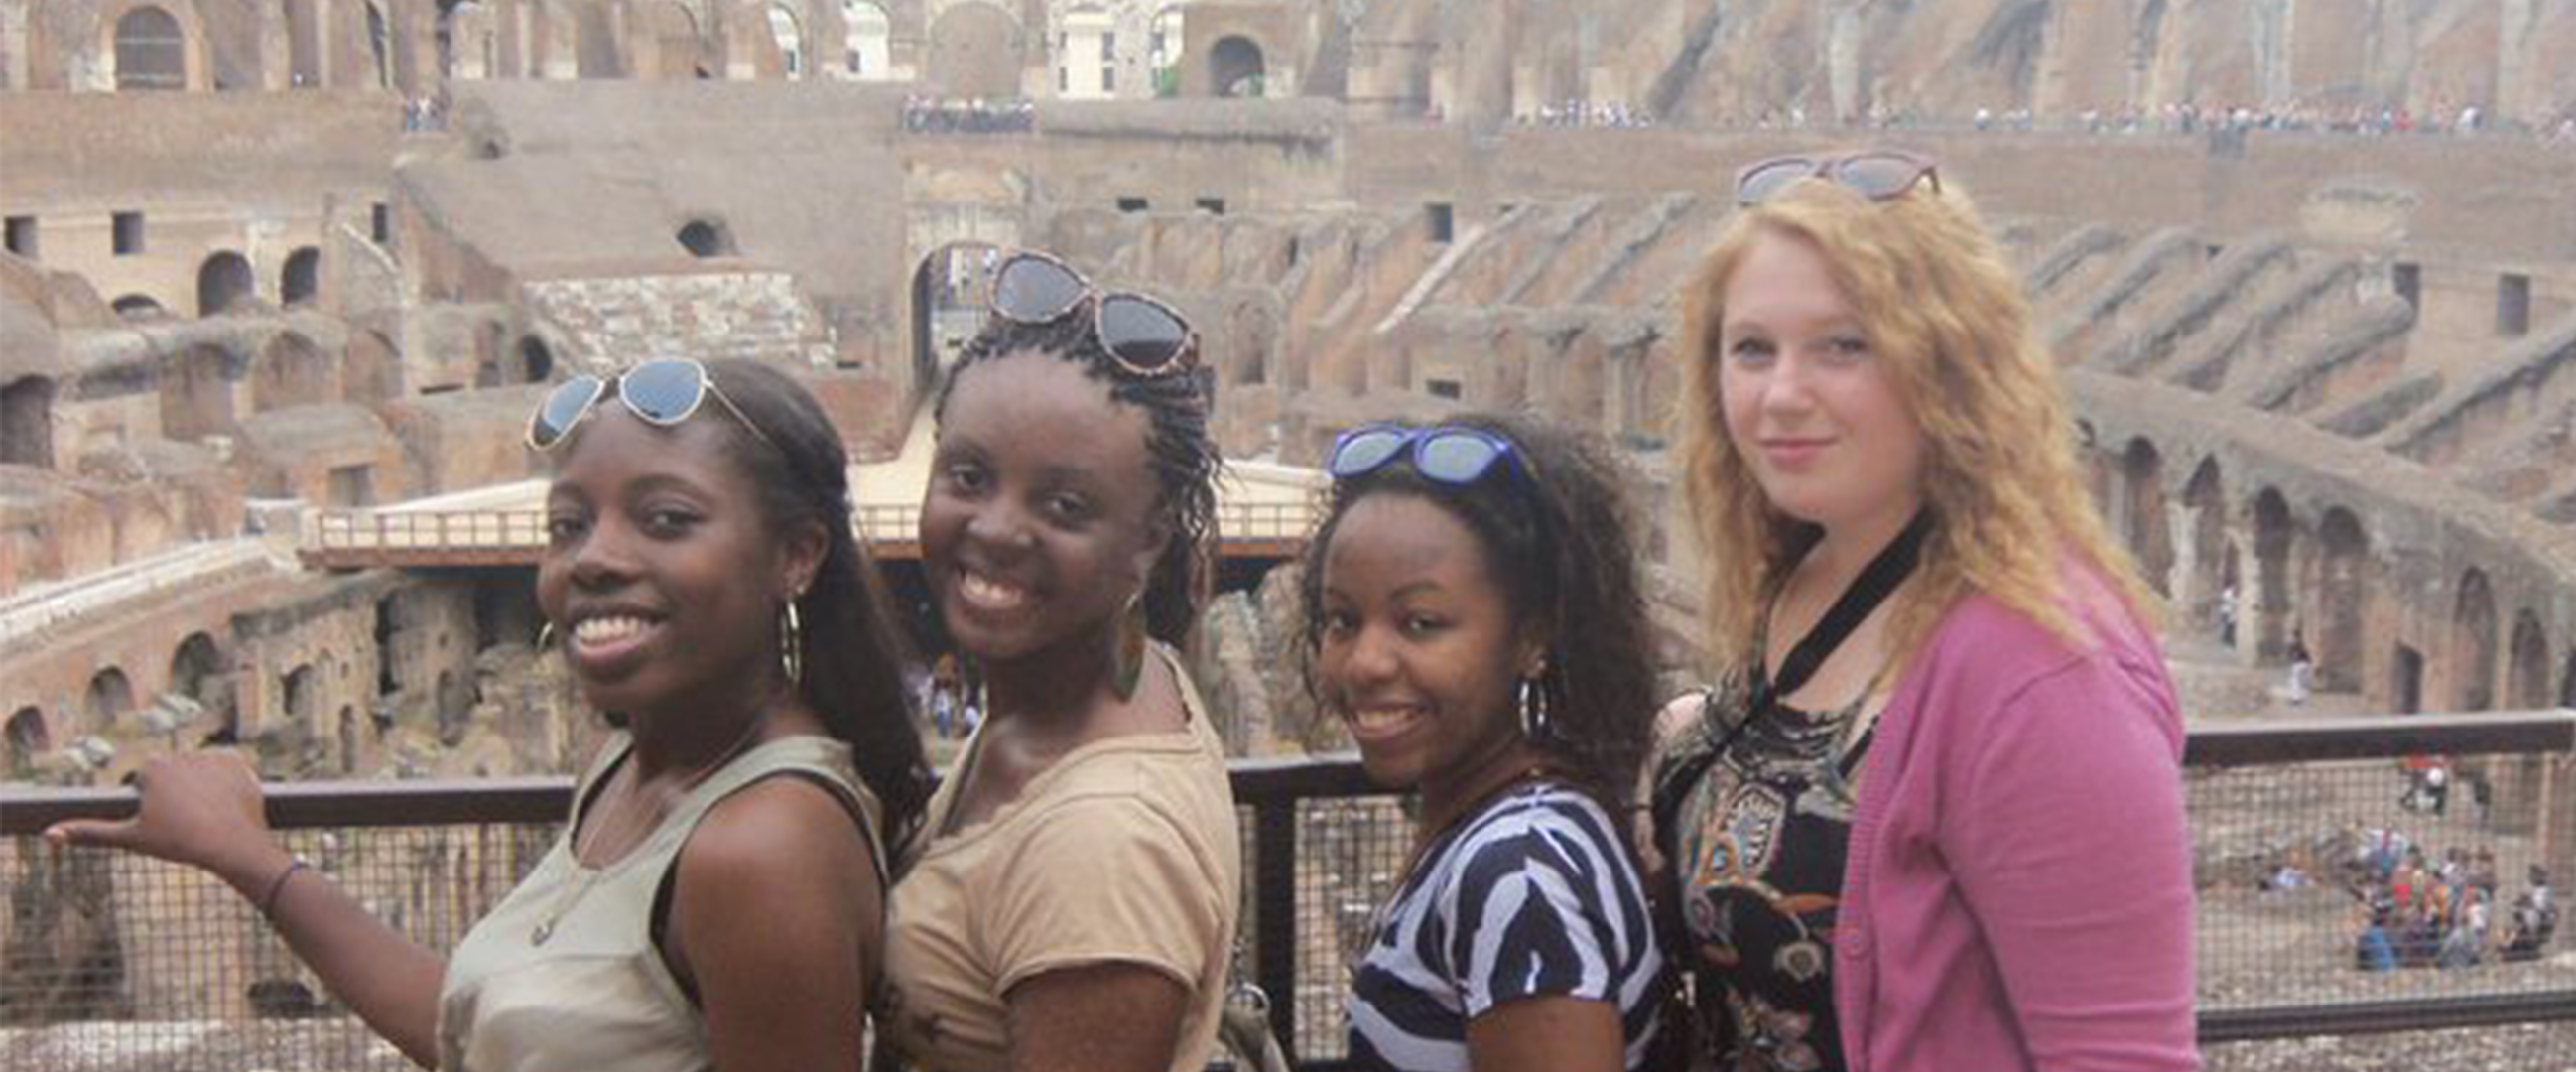 Erica with study abroad friends posing at the Coliseum